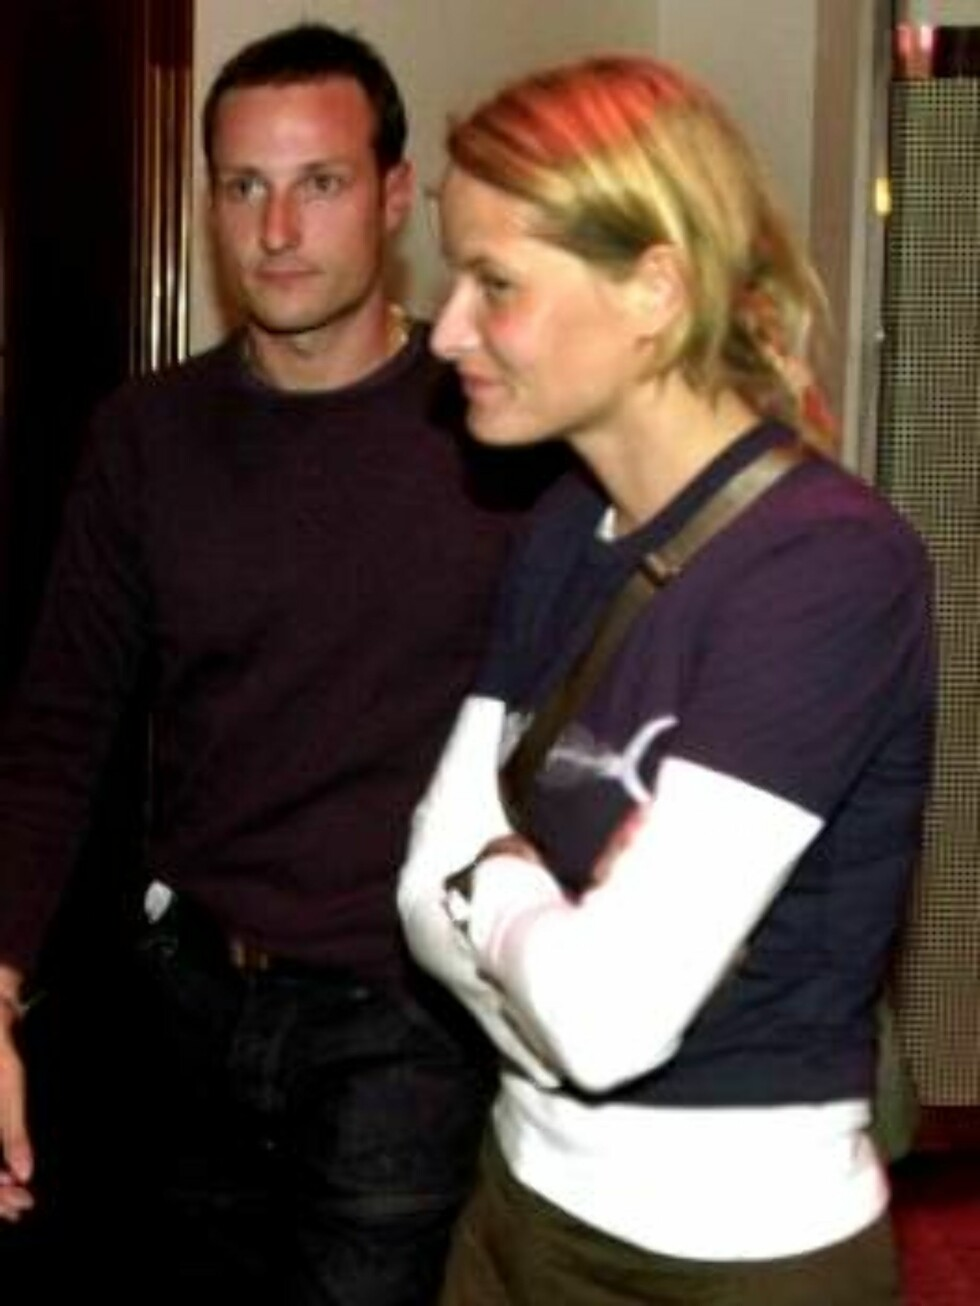 This July 2000 file photo shows Norway's Crown Prince Haakon and his girlfriend Mette-Marit Tjessem Hoiby, who will move in an Oslo downtown apartment, the Norwegian Royal Palace announced Saturday, Sept. 2, 2000. The move is being seen as a step towards Foto: Morten Eik, Se og Hør